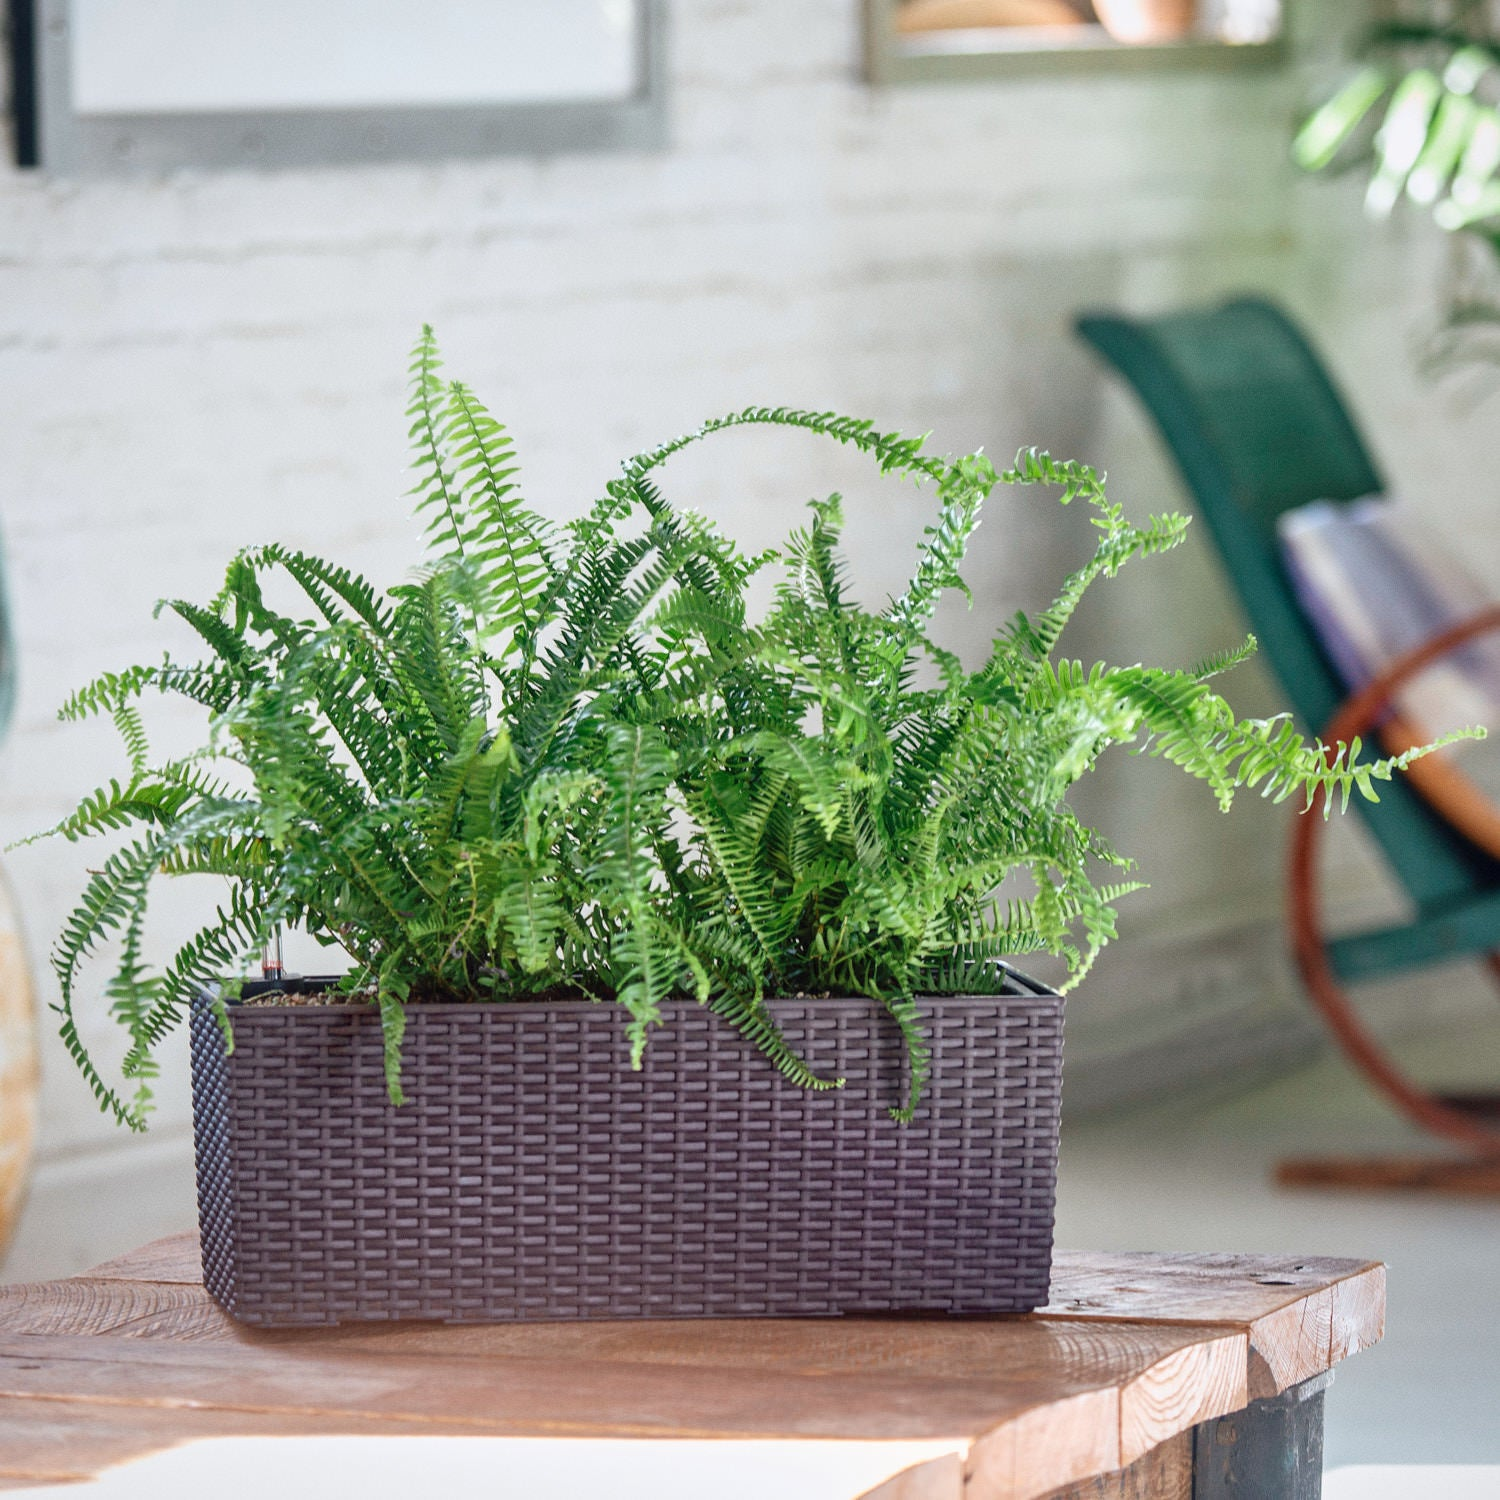 Kimberly Queen Fern potted in Lechuza Balconera Cottage mocha planter - My City Plants